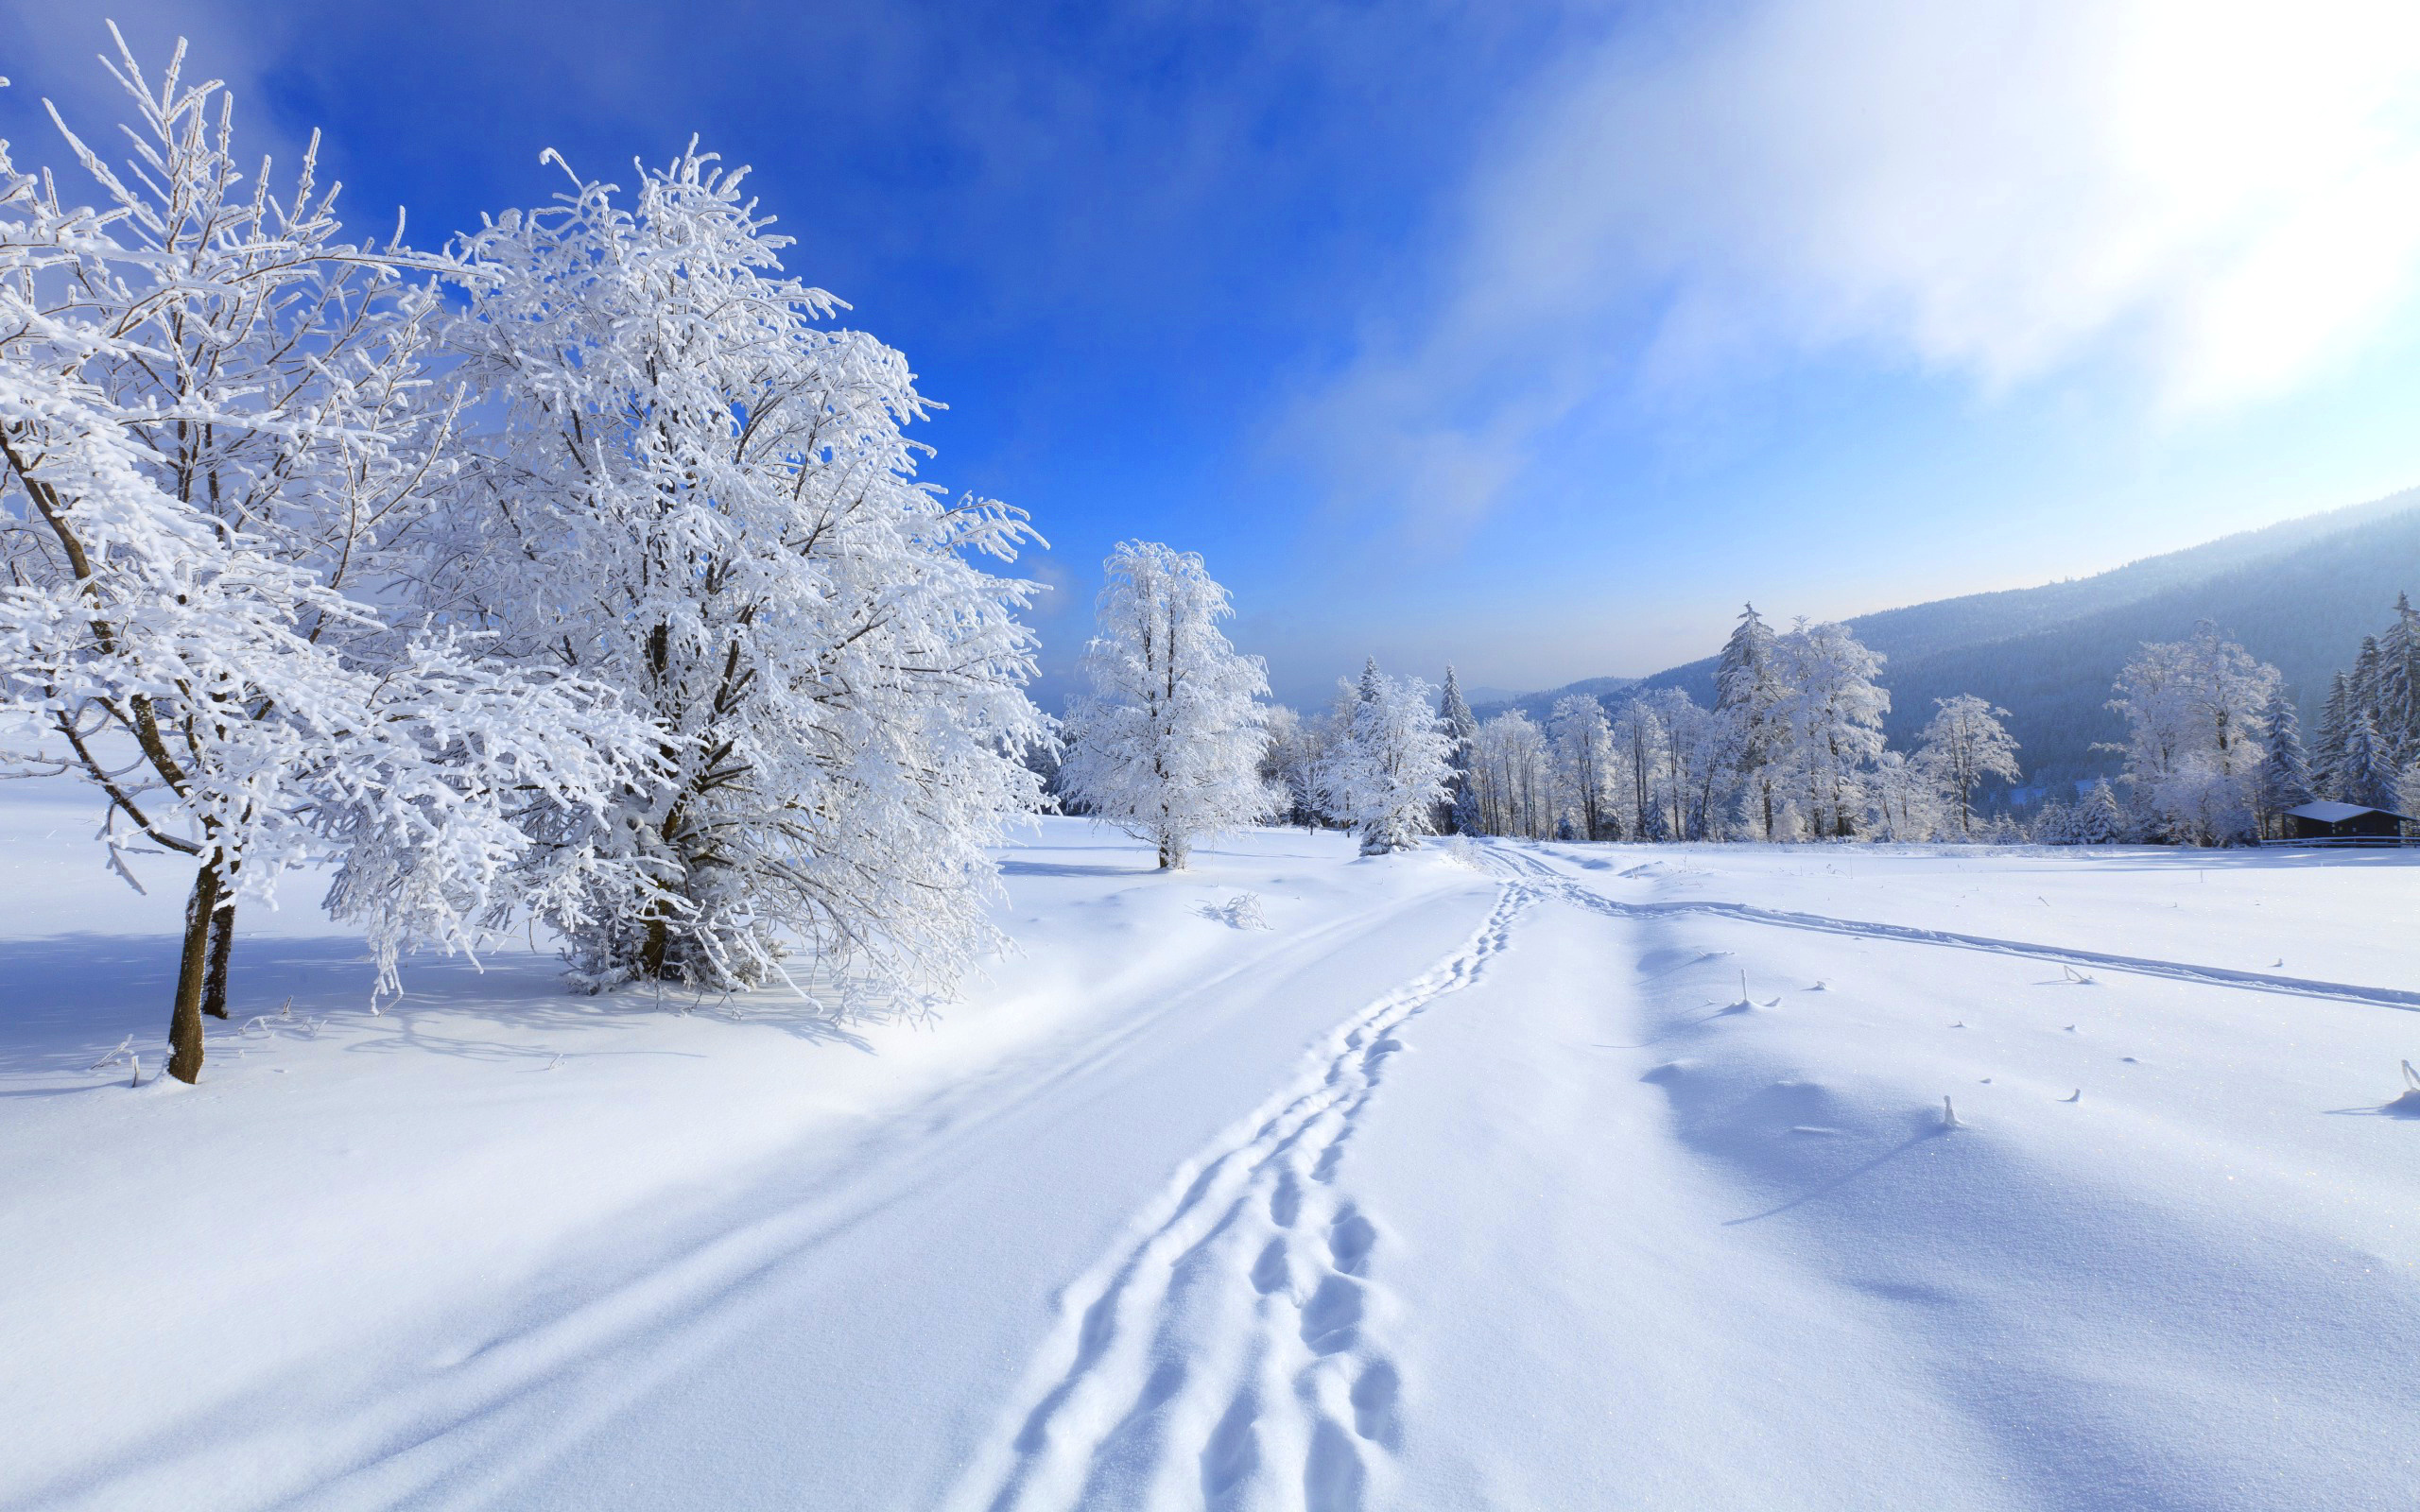 Winter HD wallpapers, Desktop wallpaper - most viewed